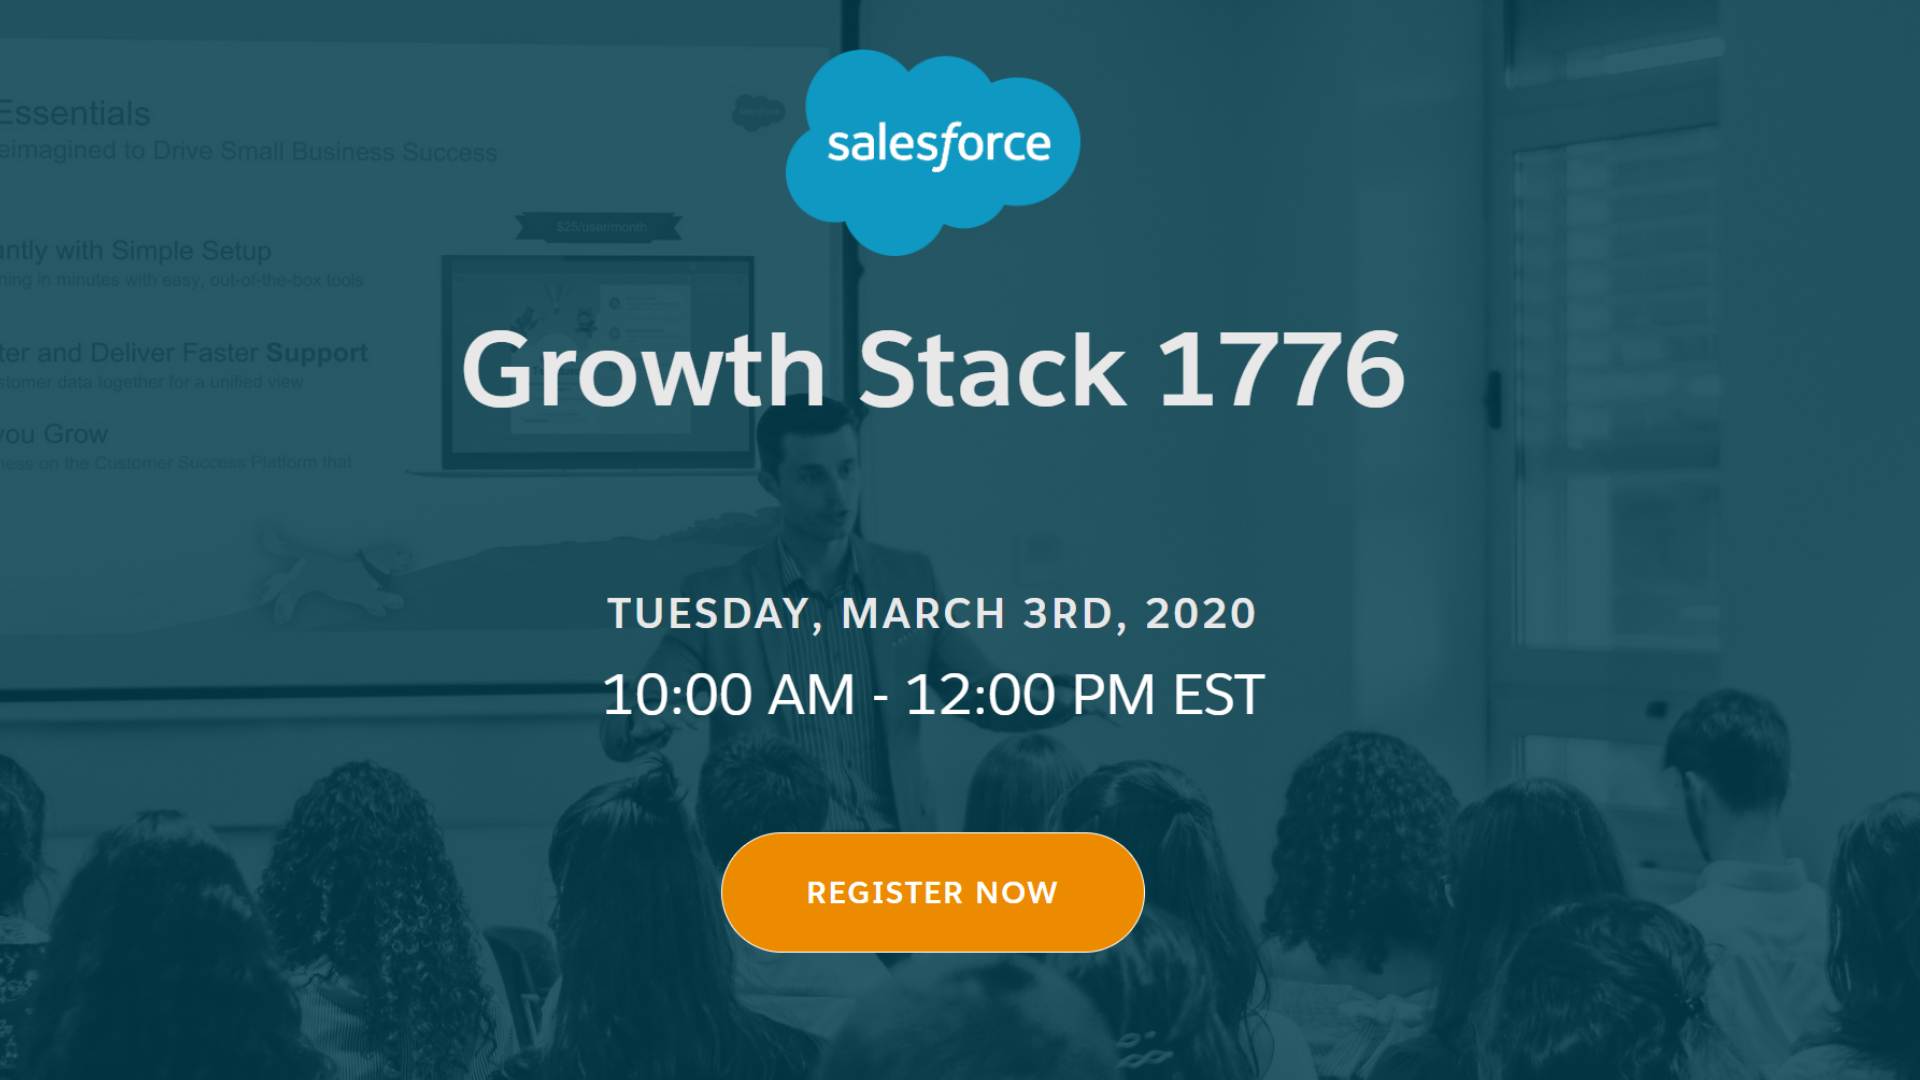 Growth Stack with 1776 and Salesforce